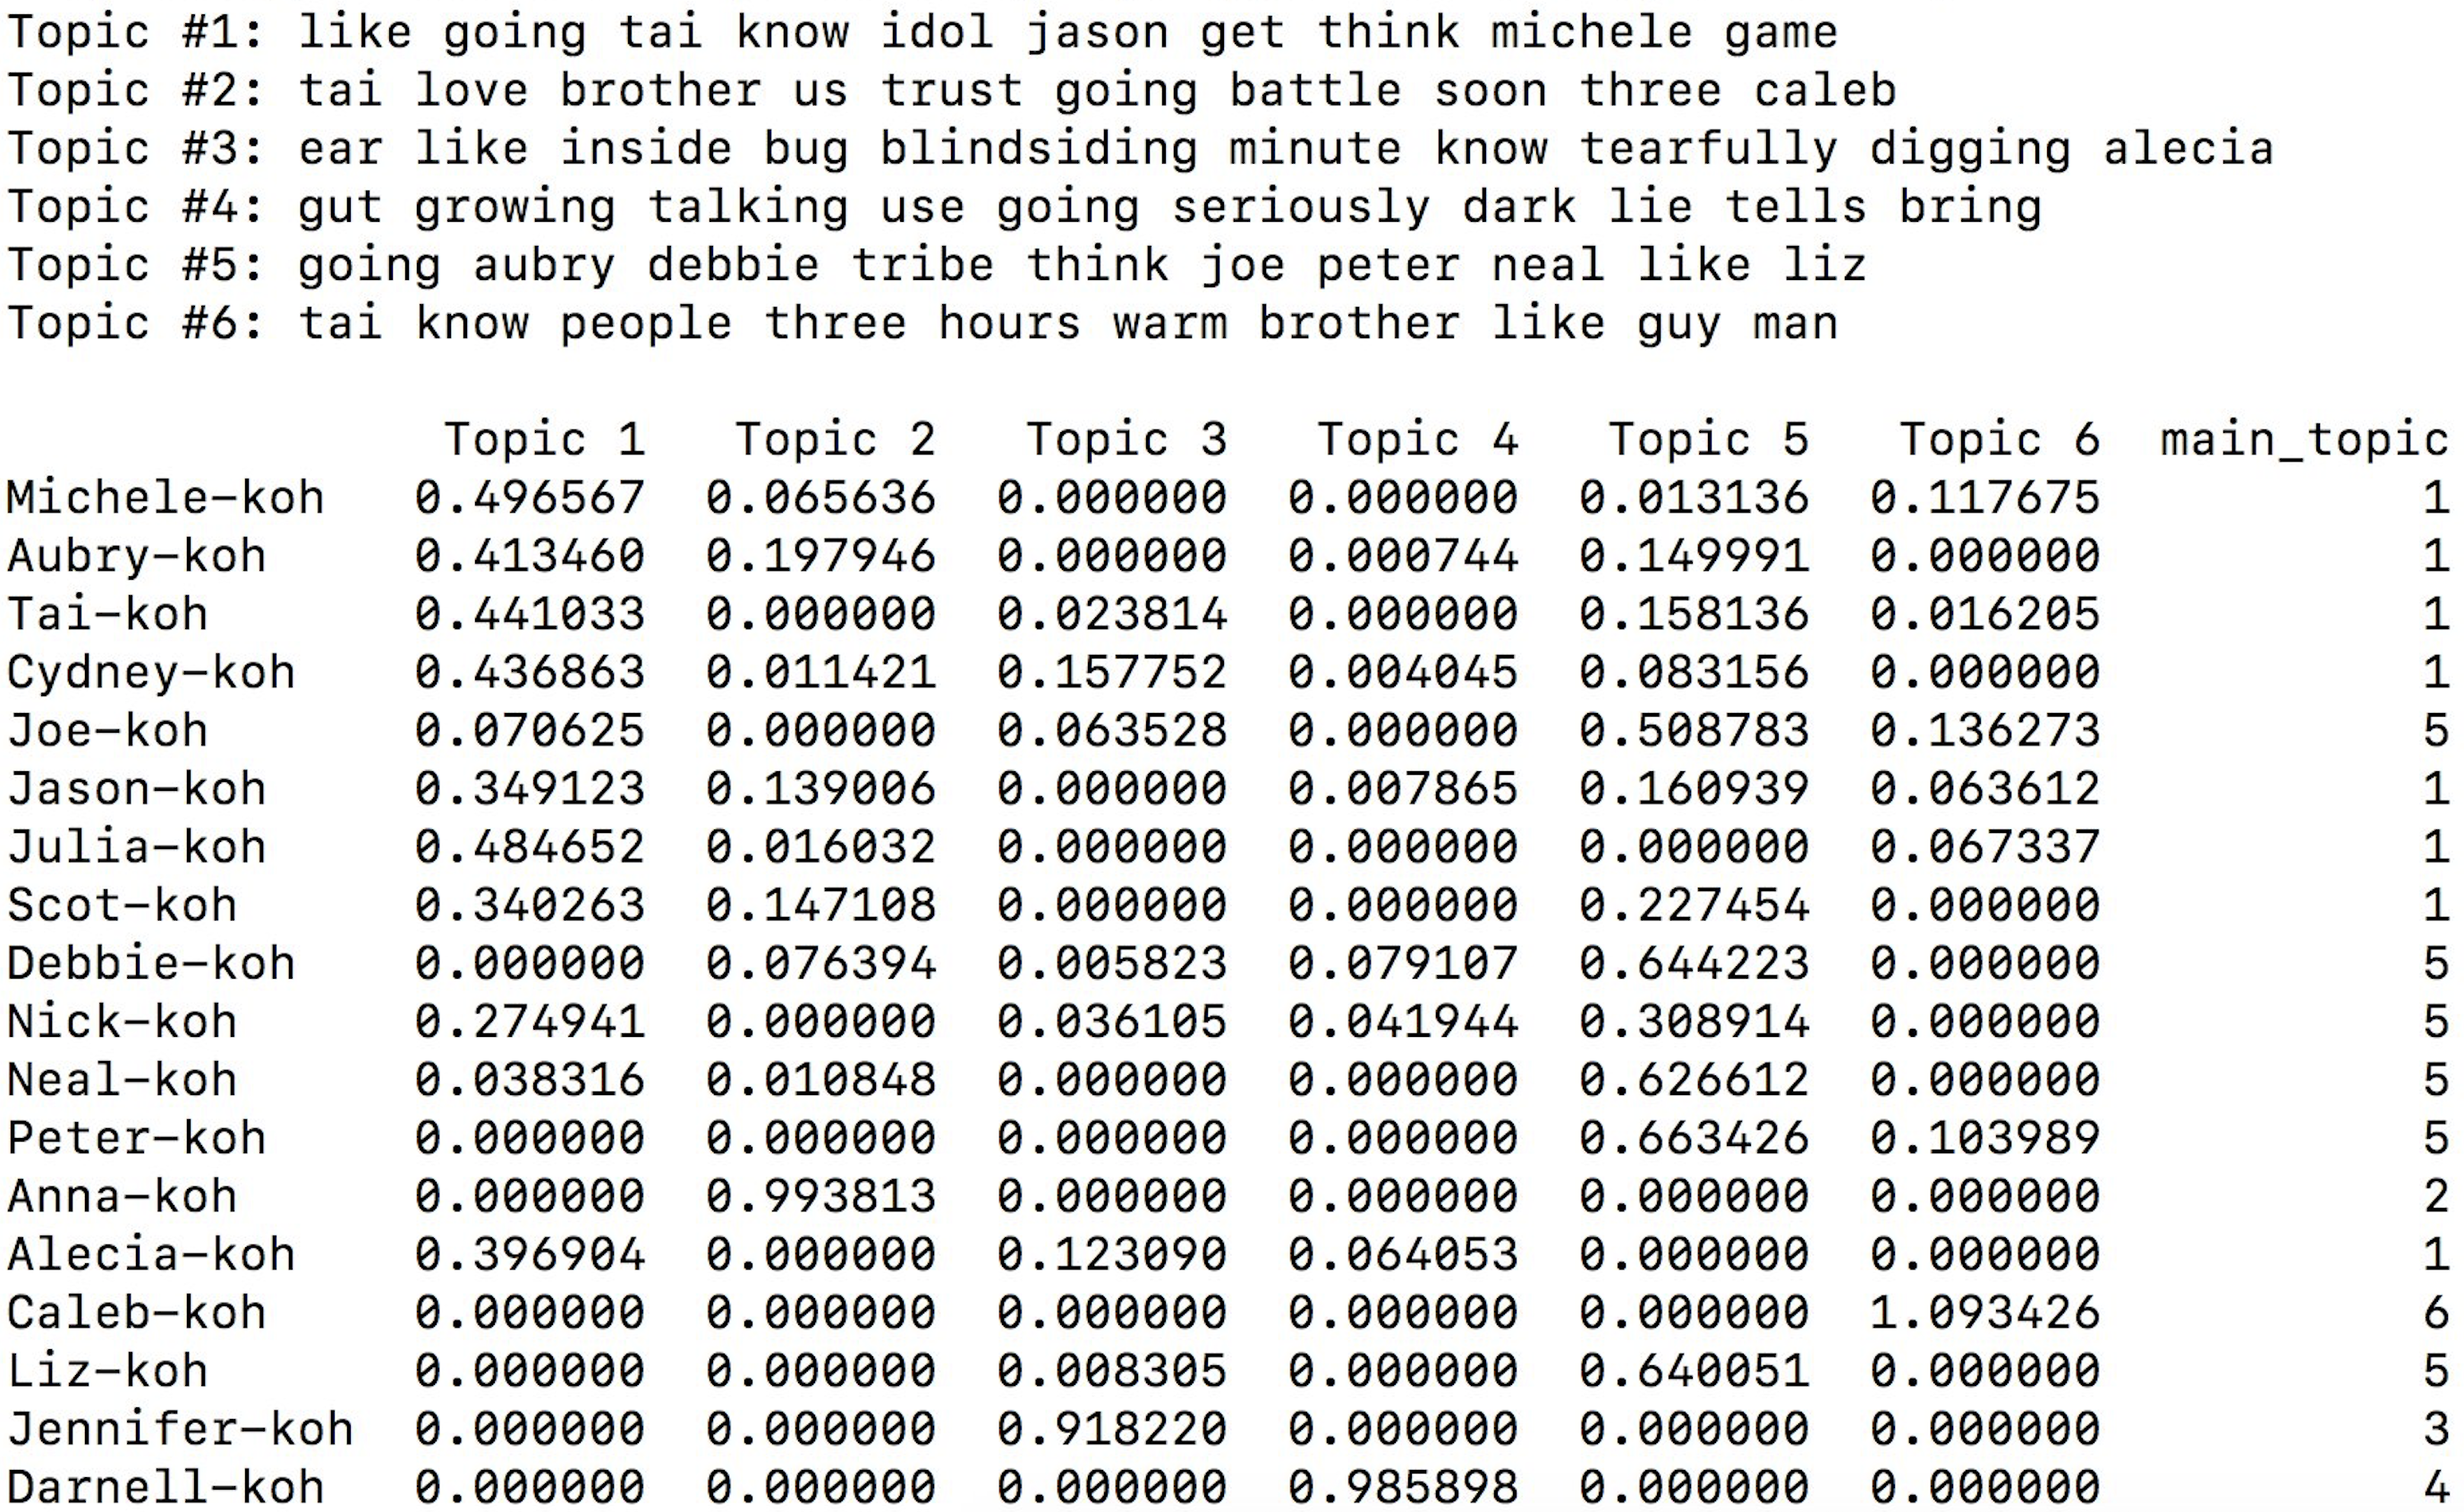 The raw data from clustering an episode